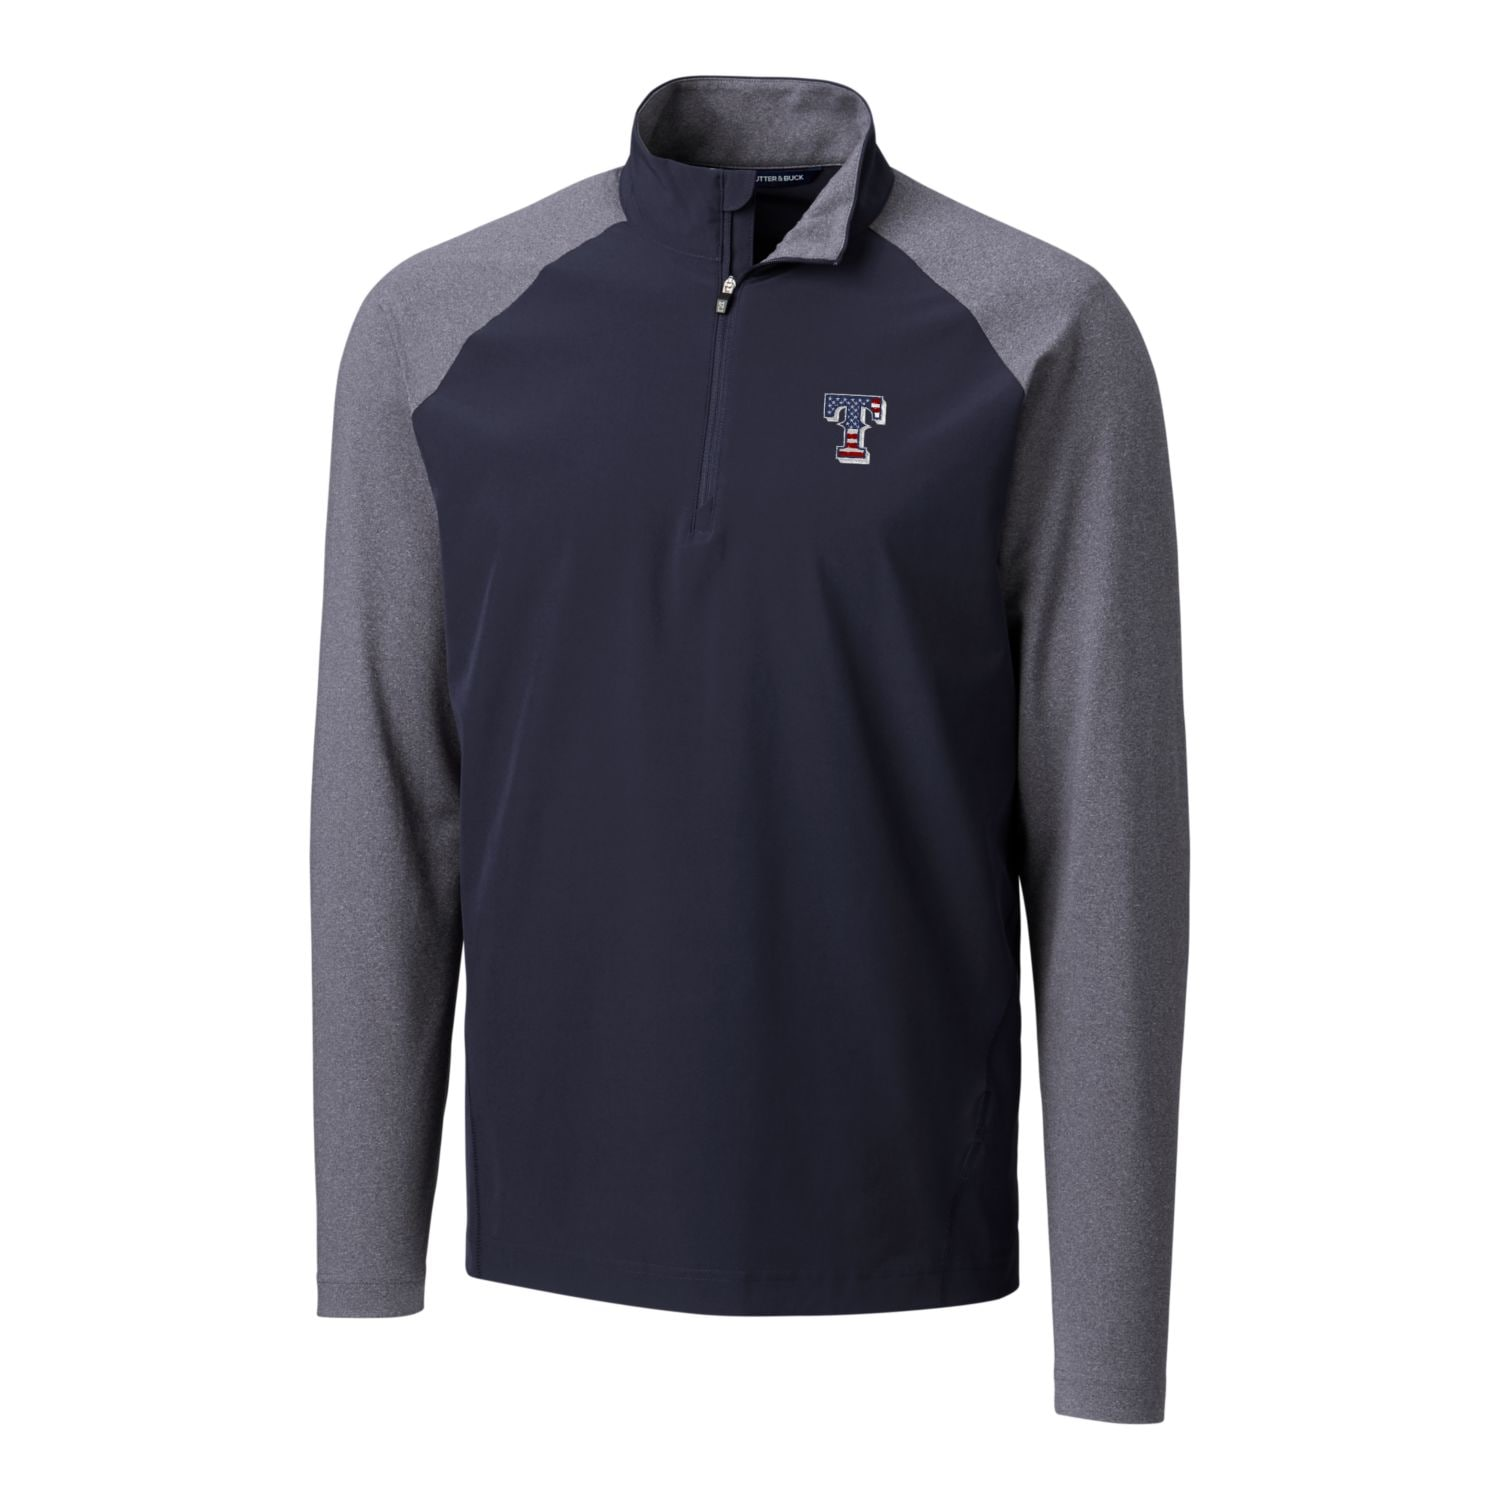 Texas Rangers Cutter & Buck Stars & Stripes Hybrid Overknit Quarter-Zip Pullover Jacket - Navy